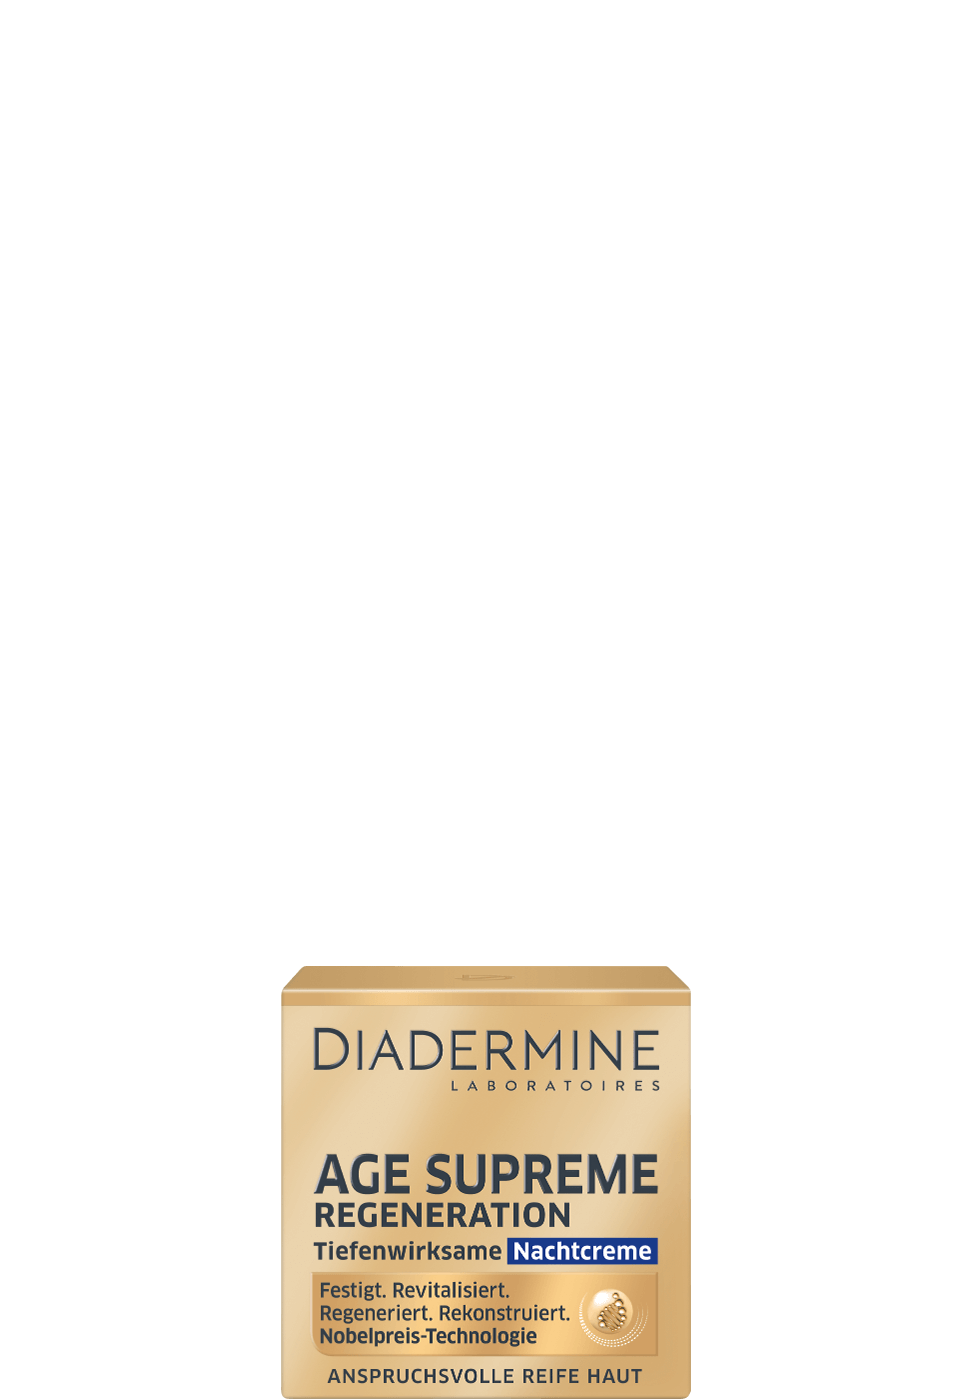 diadermine_at_age_supreme_regenertdeion_nachtcreme_970x1400